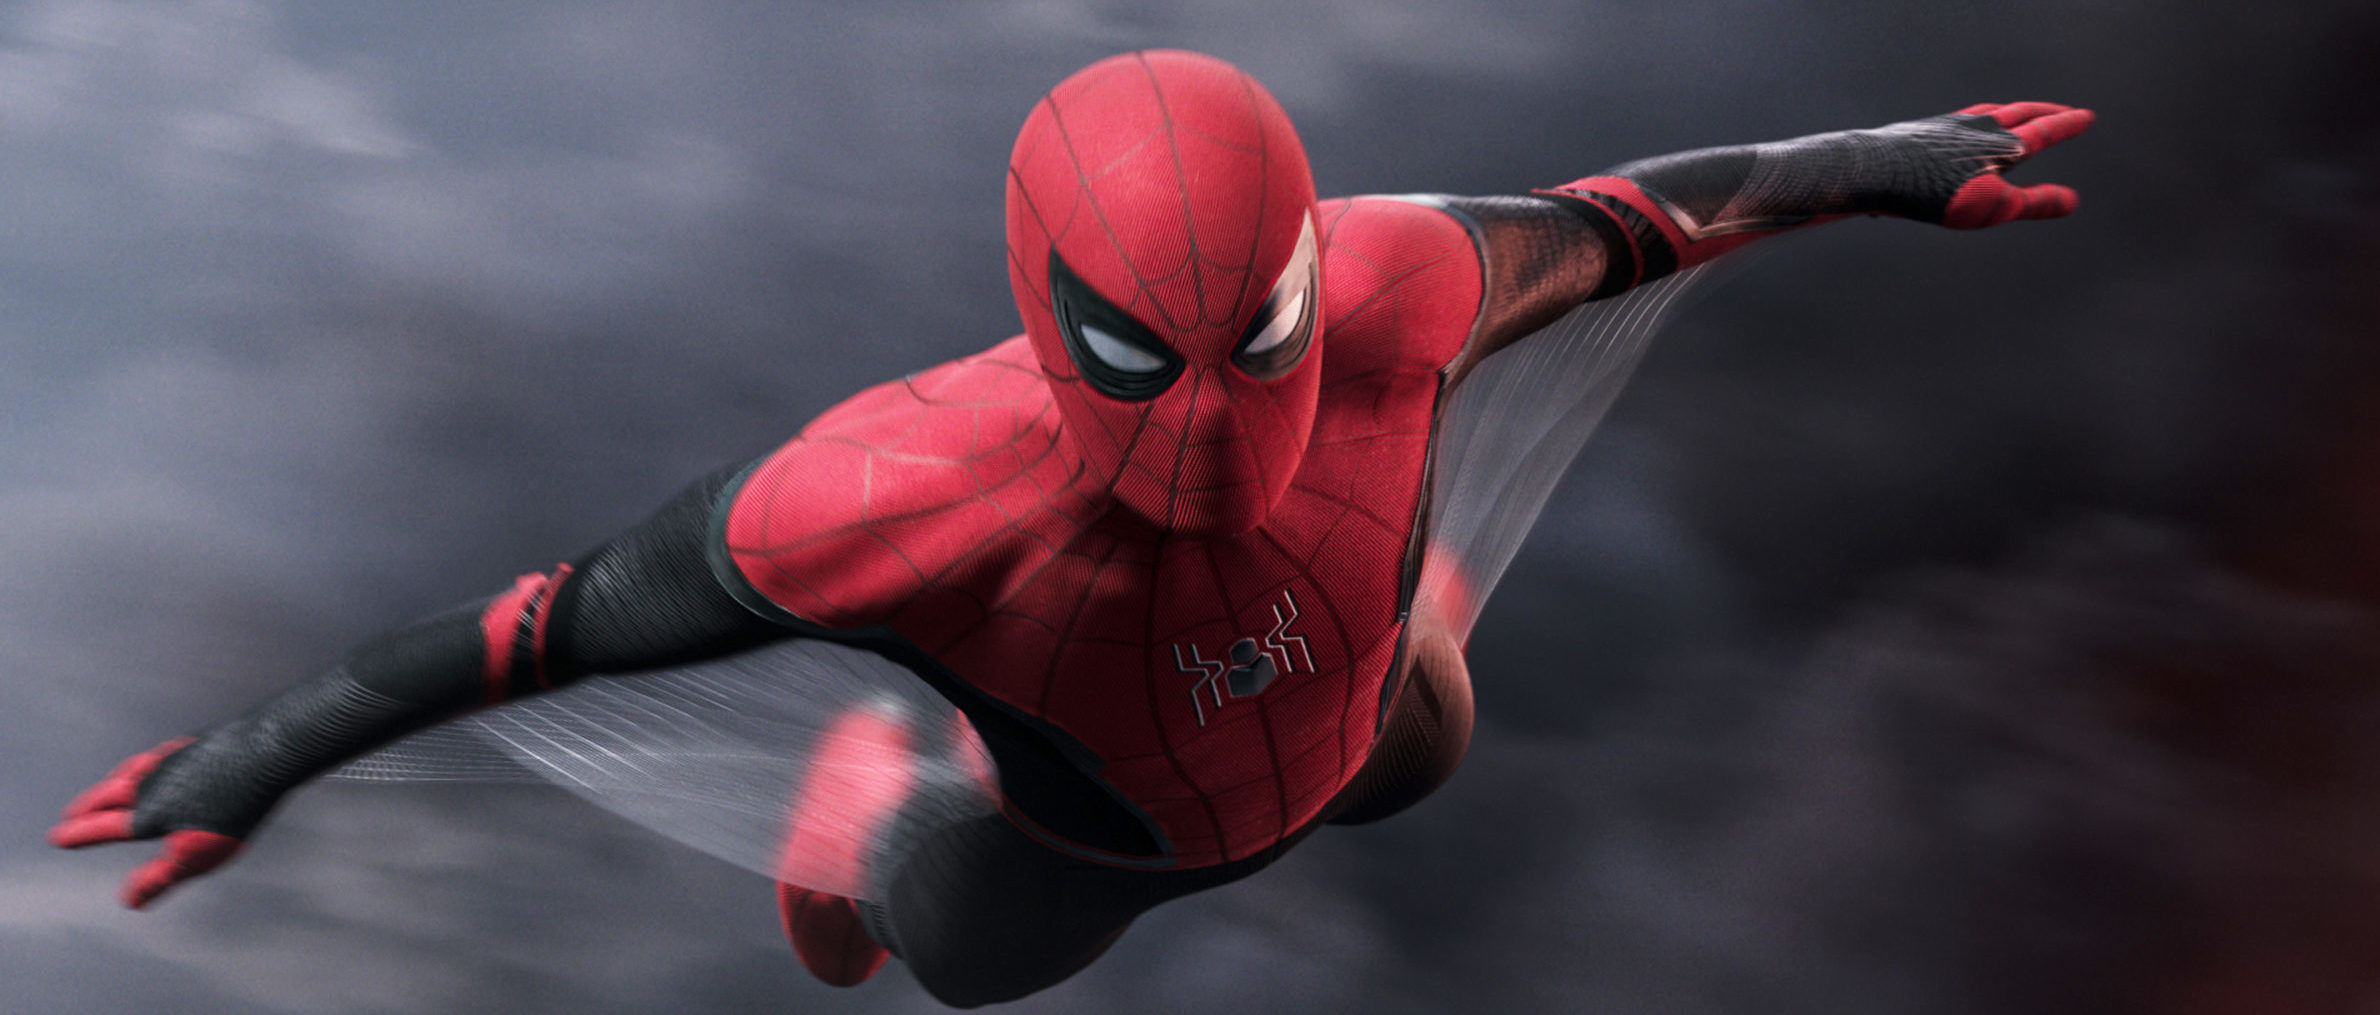 spider-man-far-from-home the human torch